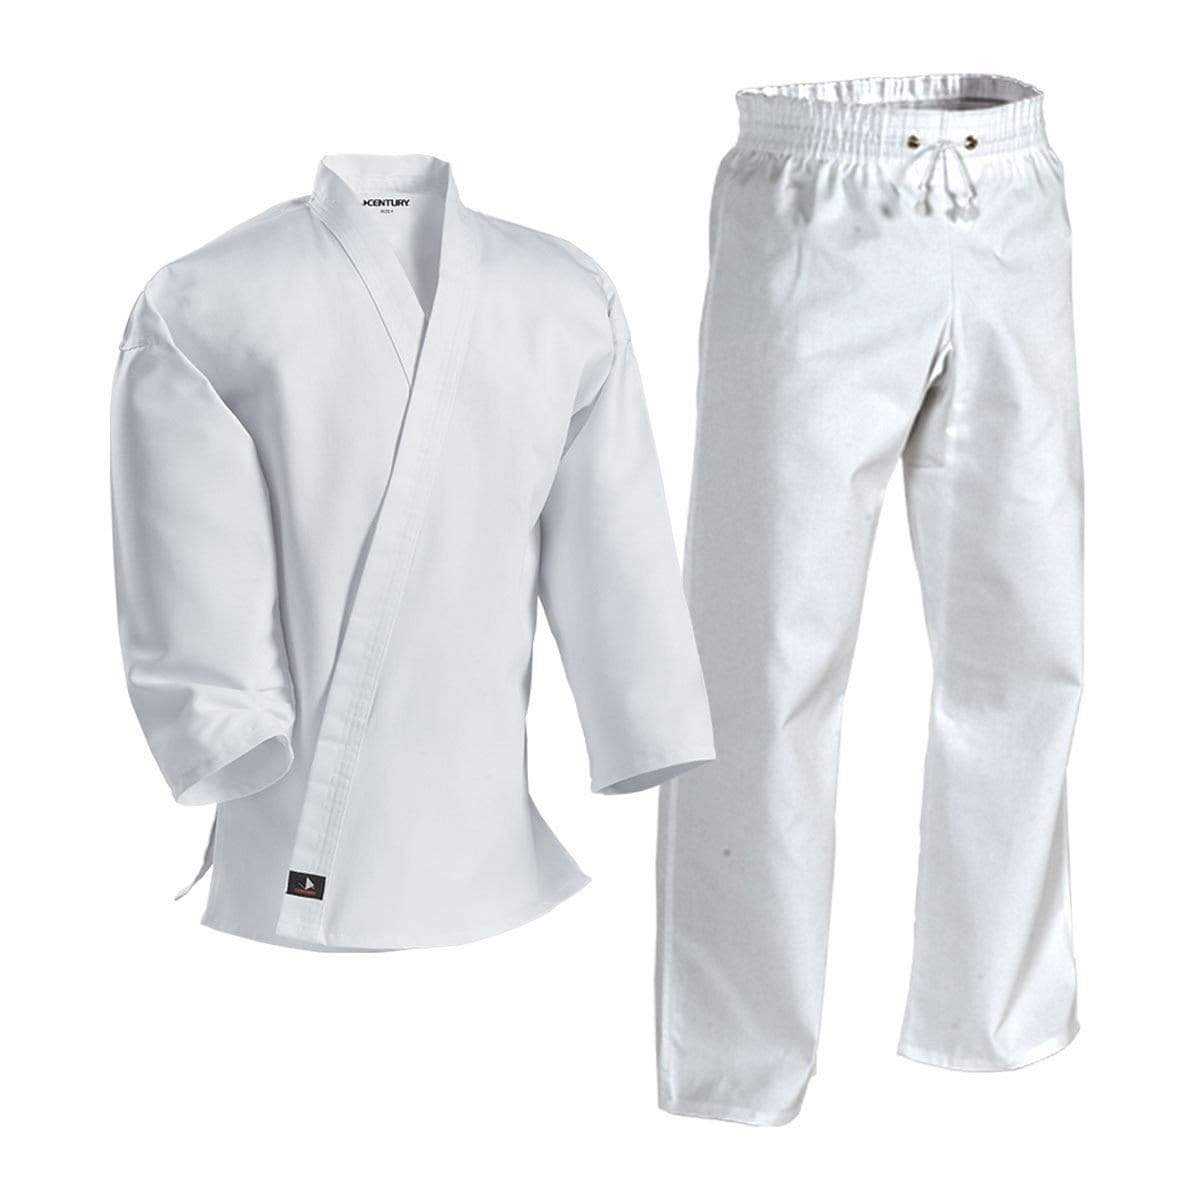 white Century Complete Middleweight Elastic Waist Poly-Cotton Uniform Karate Martial Arts  c043